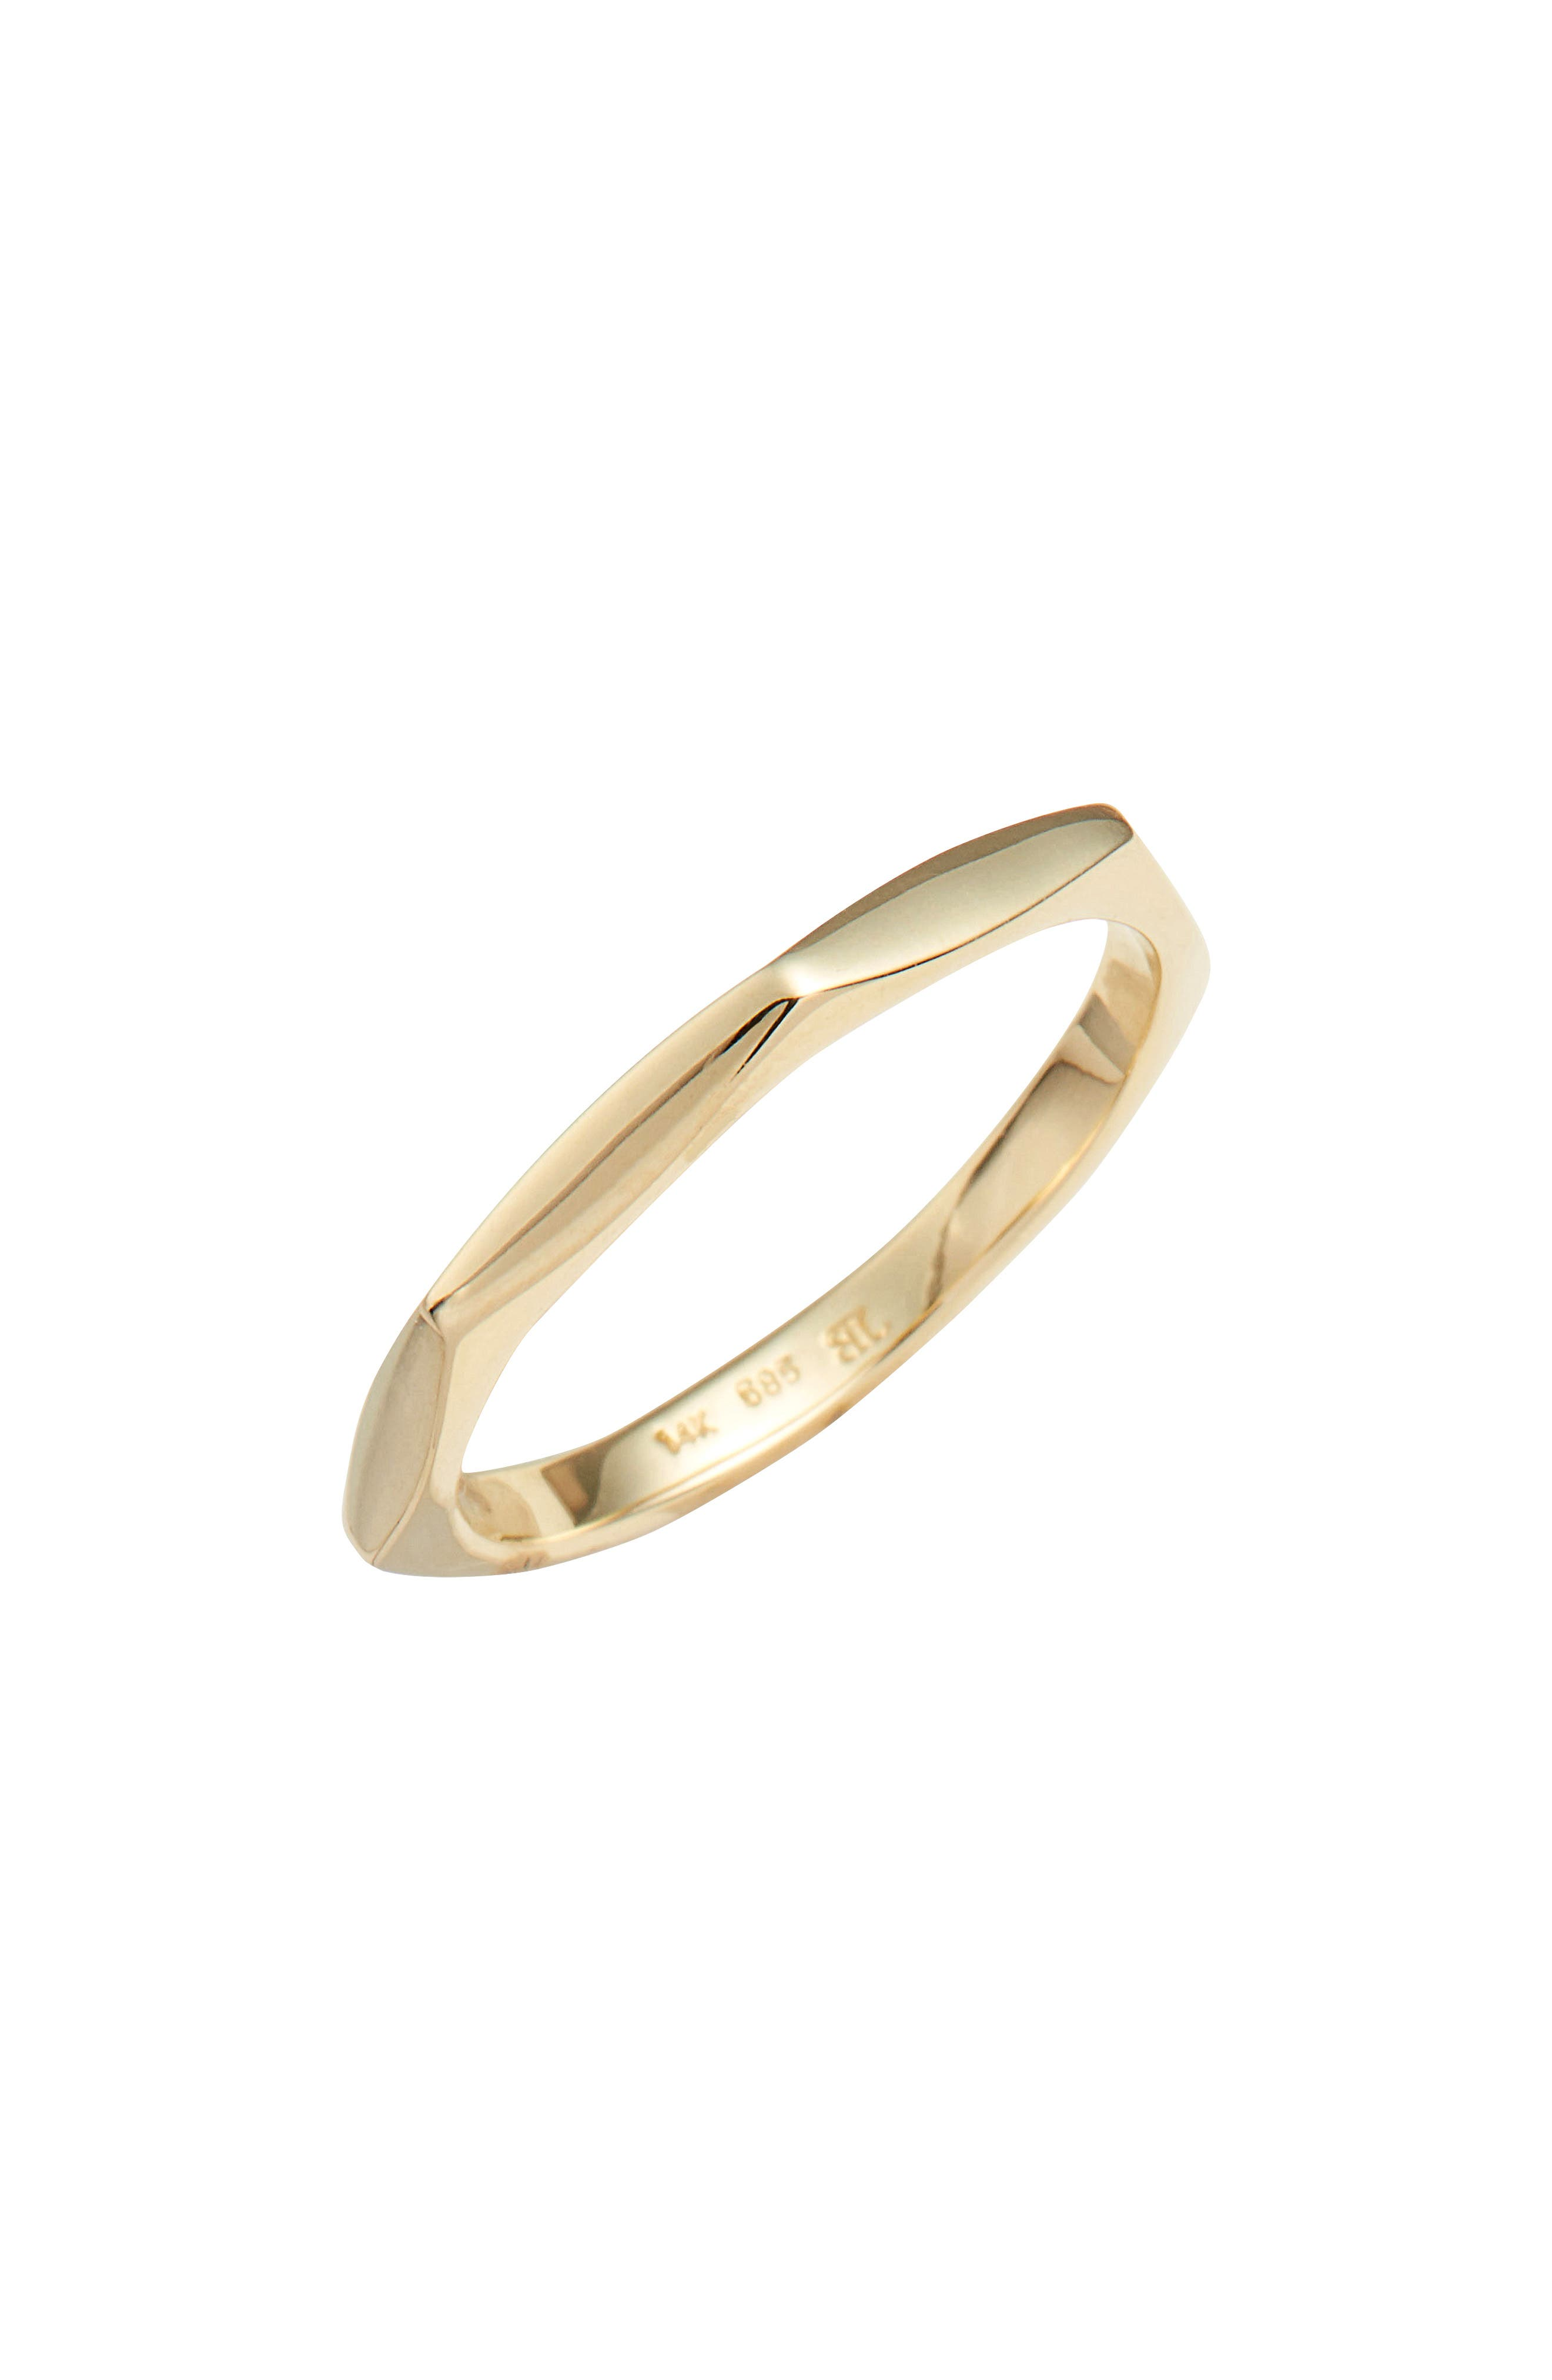 Geometric Band,                         Main,                         color, YELLOW GOLD